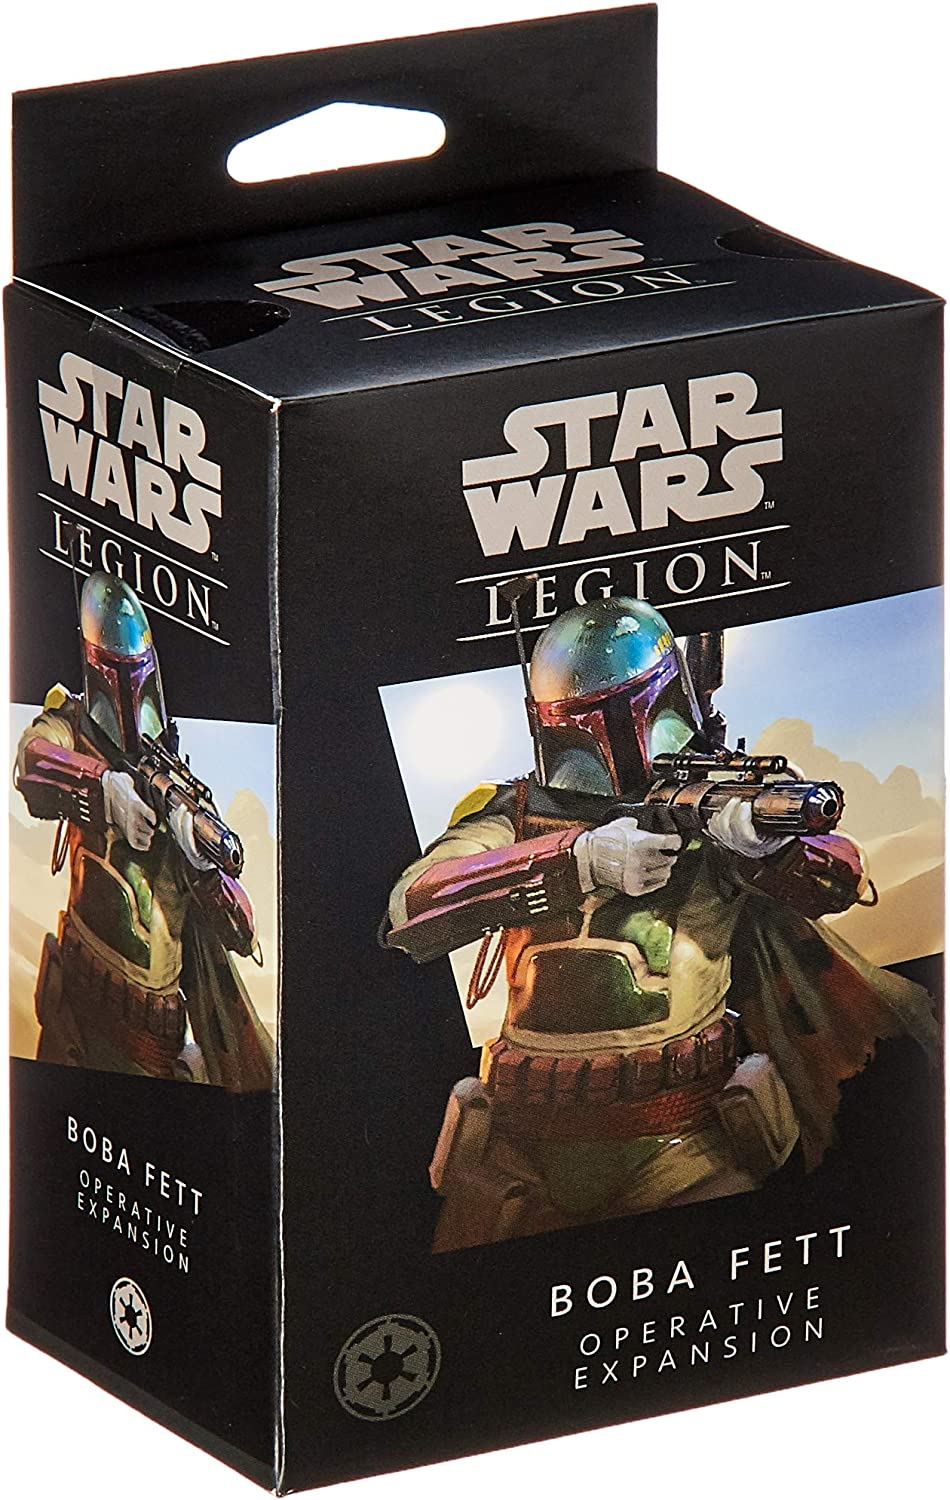 Star Wars : Legion - Boba Fett Operative Exp